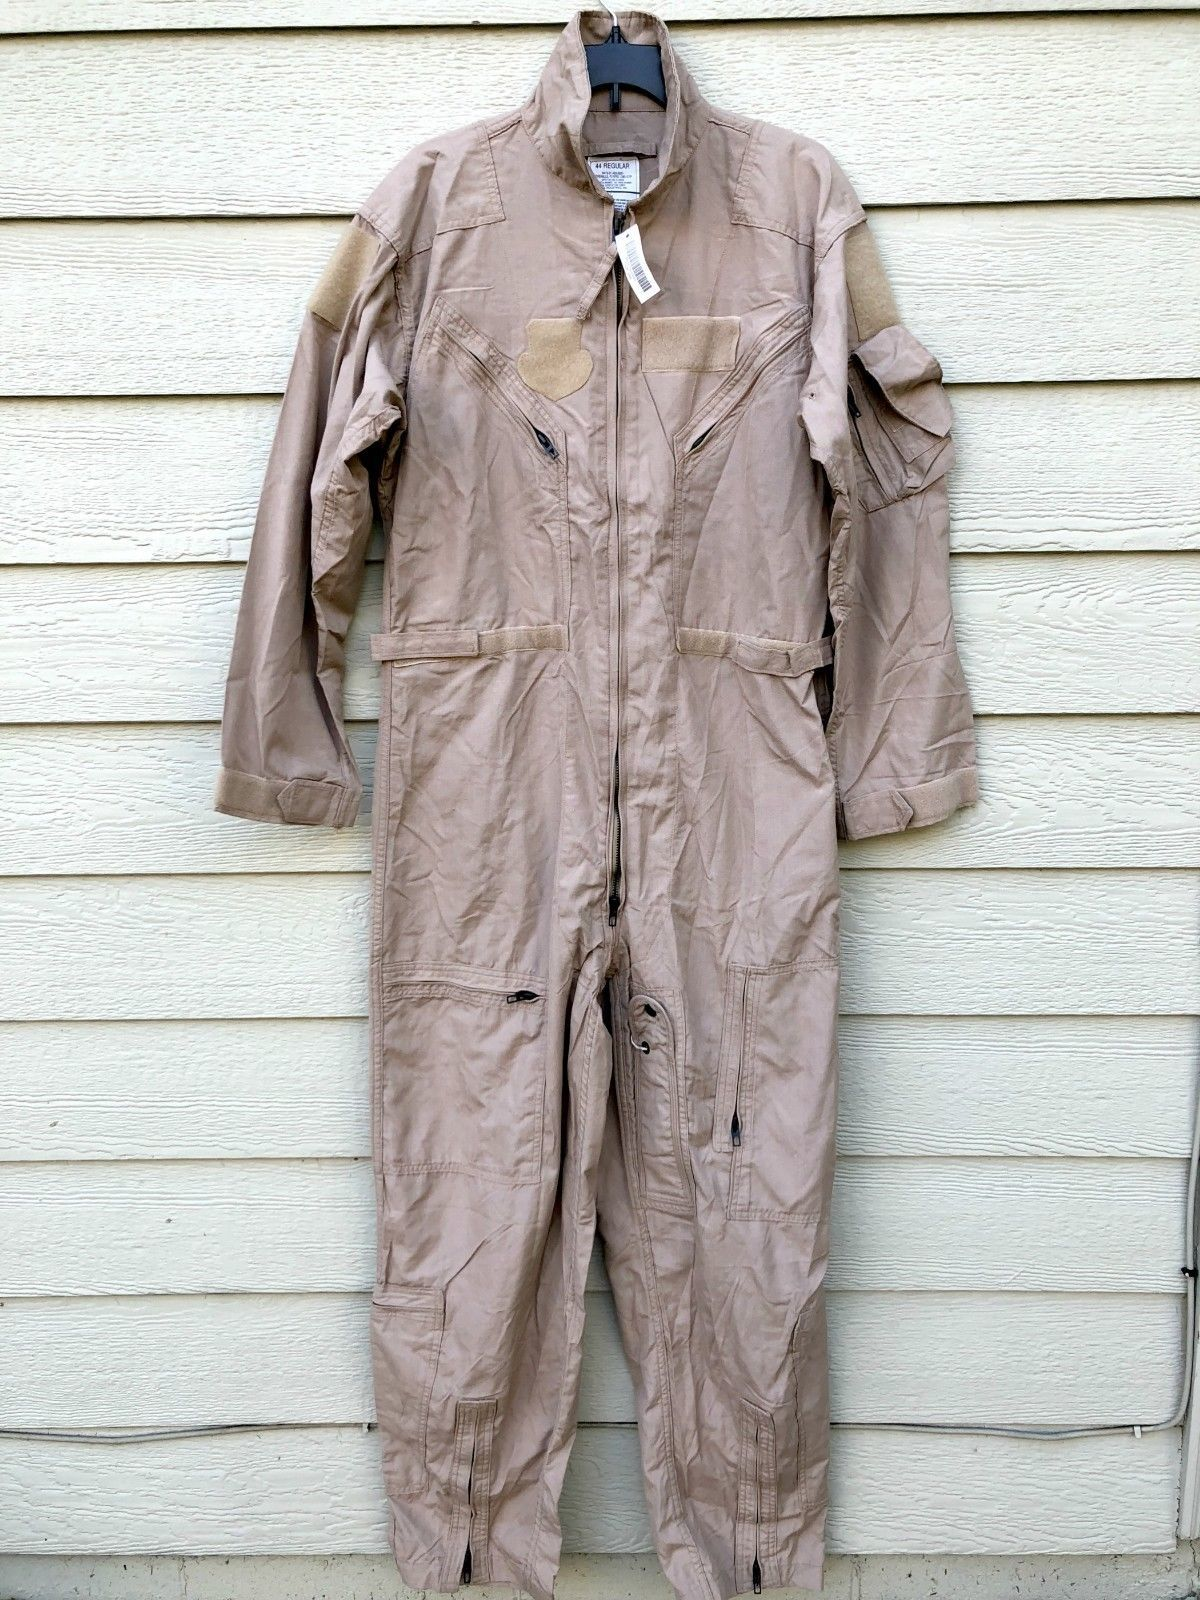 Primary image for NWT GENUINE US AIR FORCE TAN NOMEX FIRE RESISTANT FLIGHT SUIT CWU-27/P - 44R